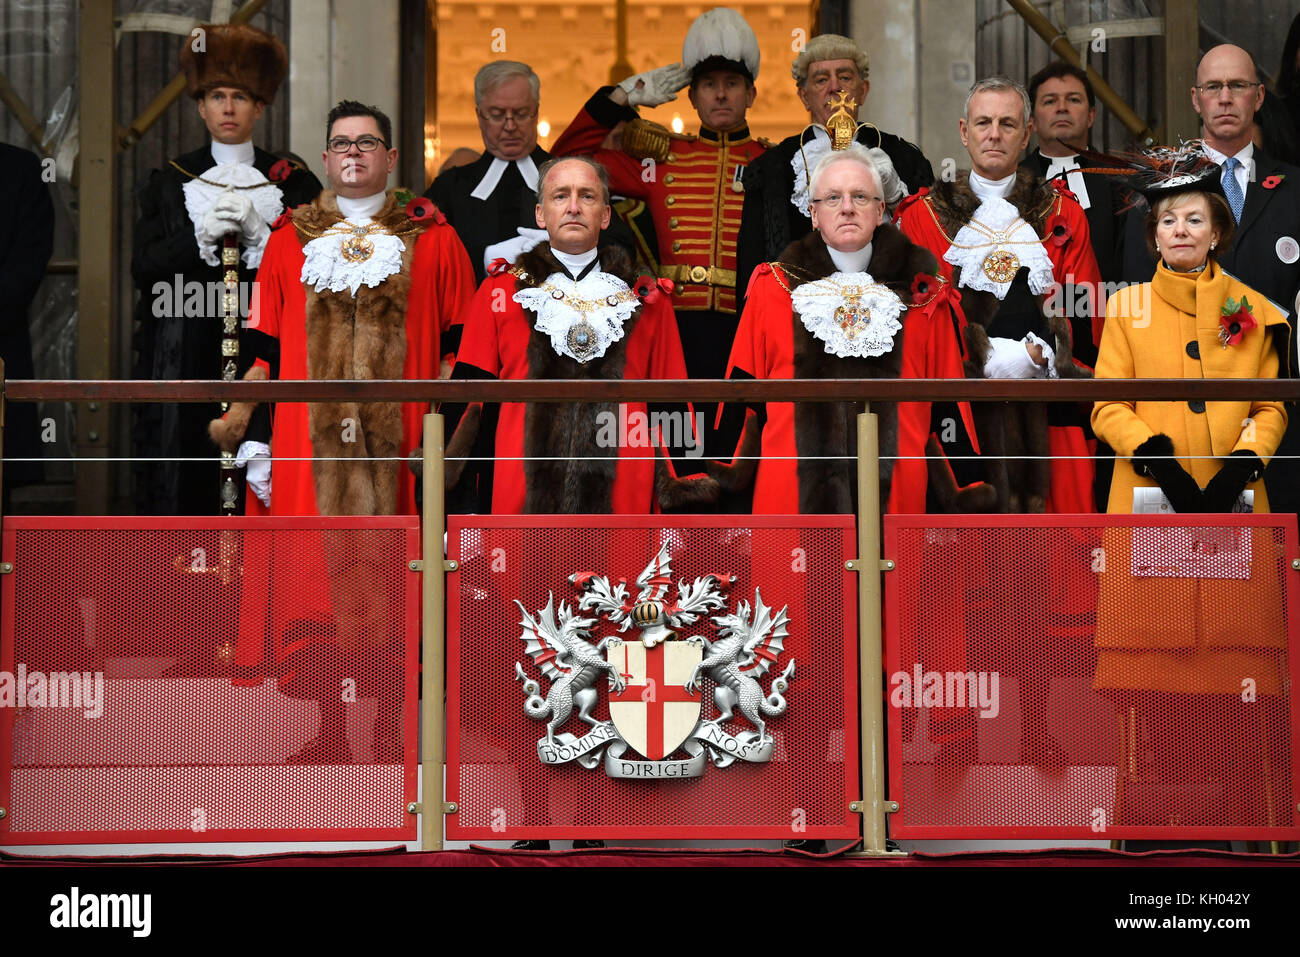 The new Lord Mayor of London Charles Bowman (front left) observes a minute's silence at Guildhall in London, - Stock Image